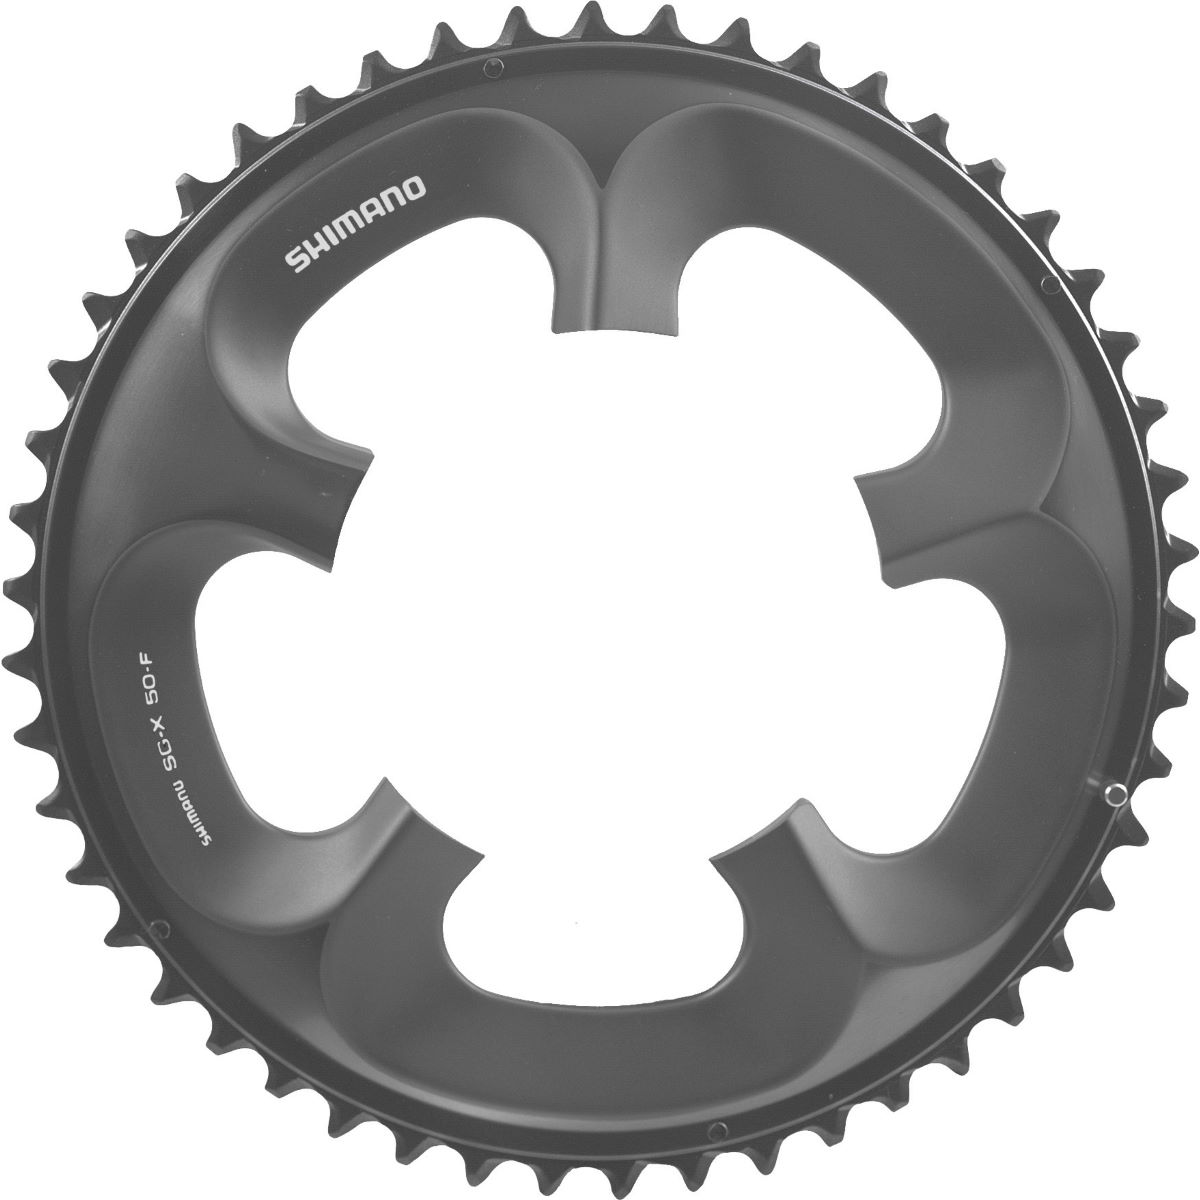 Shimano Ultegra Fc6750 10sp Compact Chainrings - 50t 10 Speed Grey